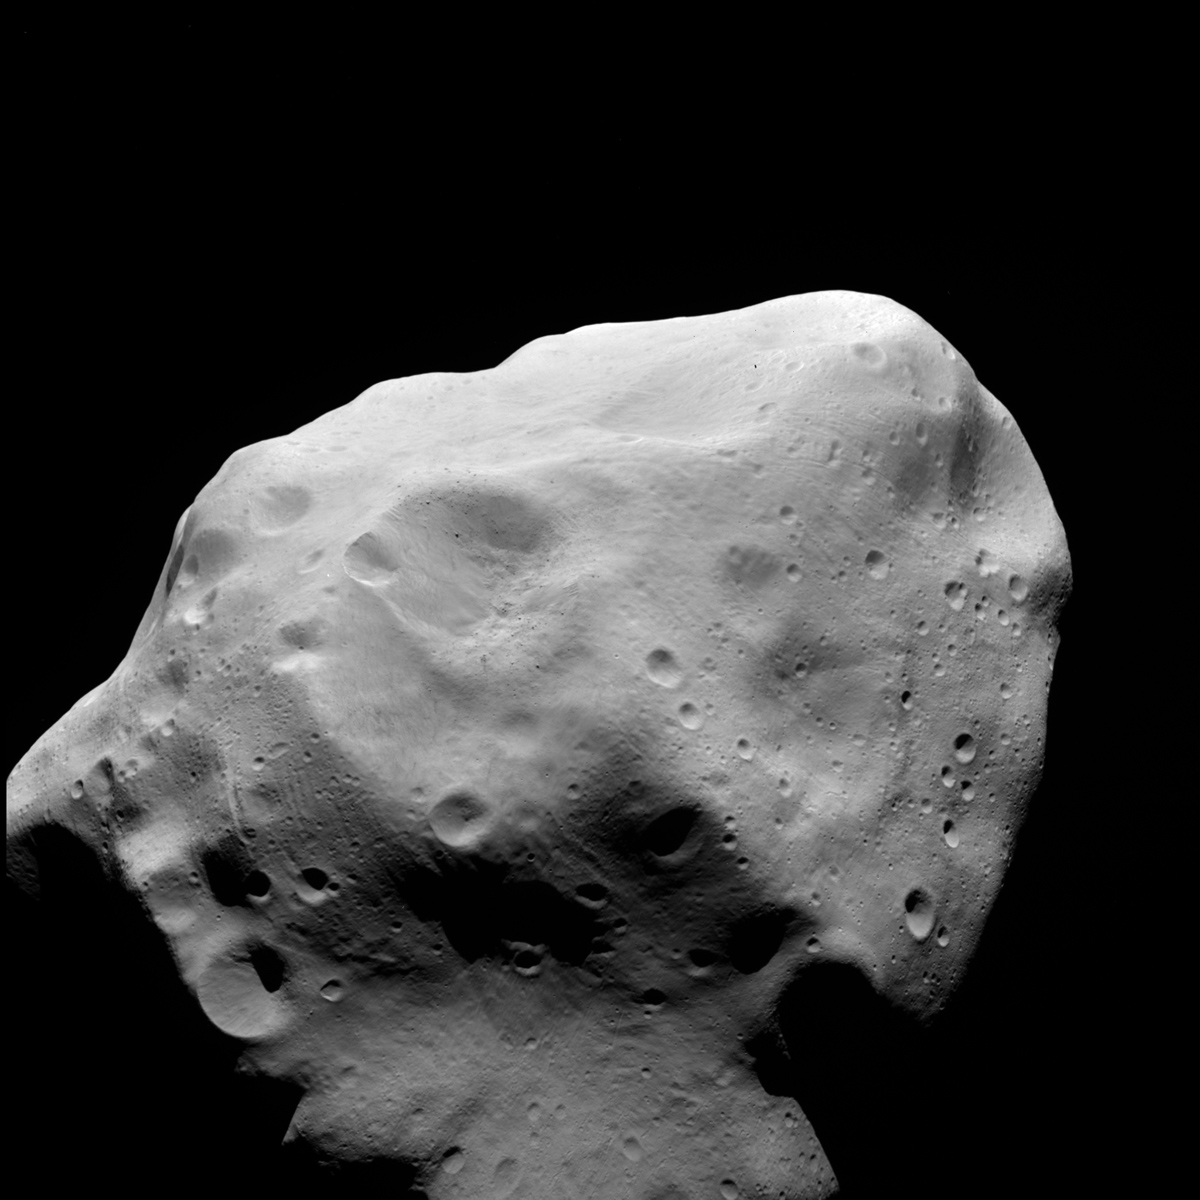 Asteroids: Fun Facts and Information About Asteroids